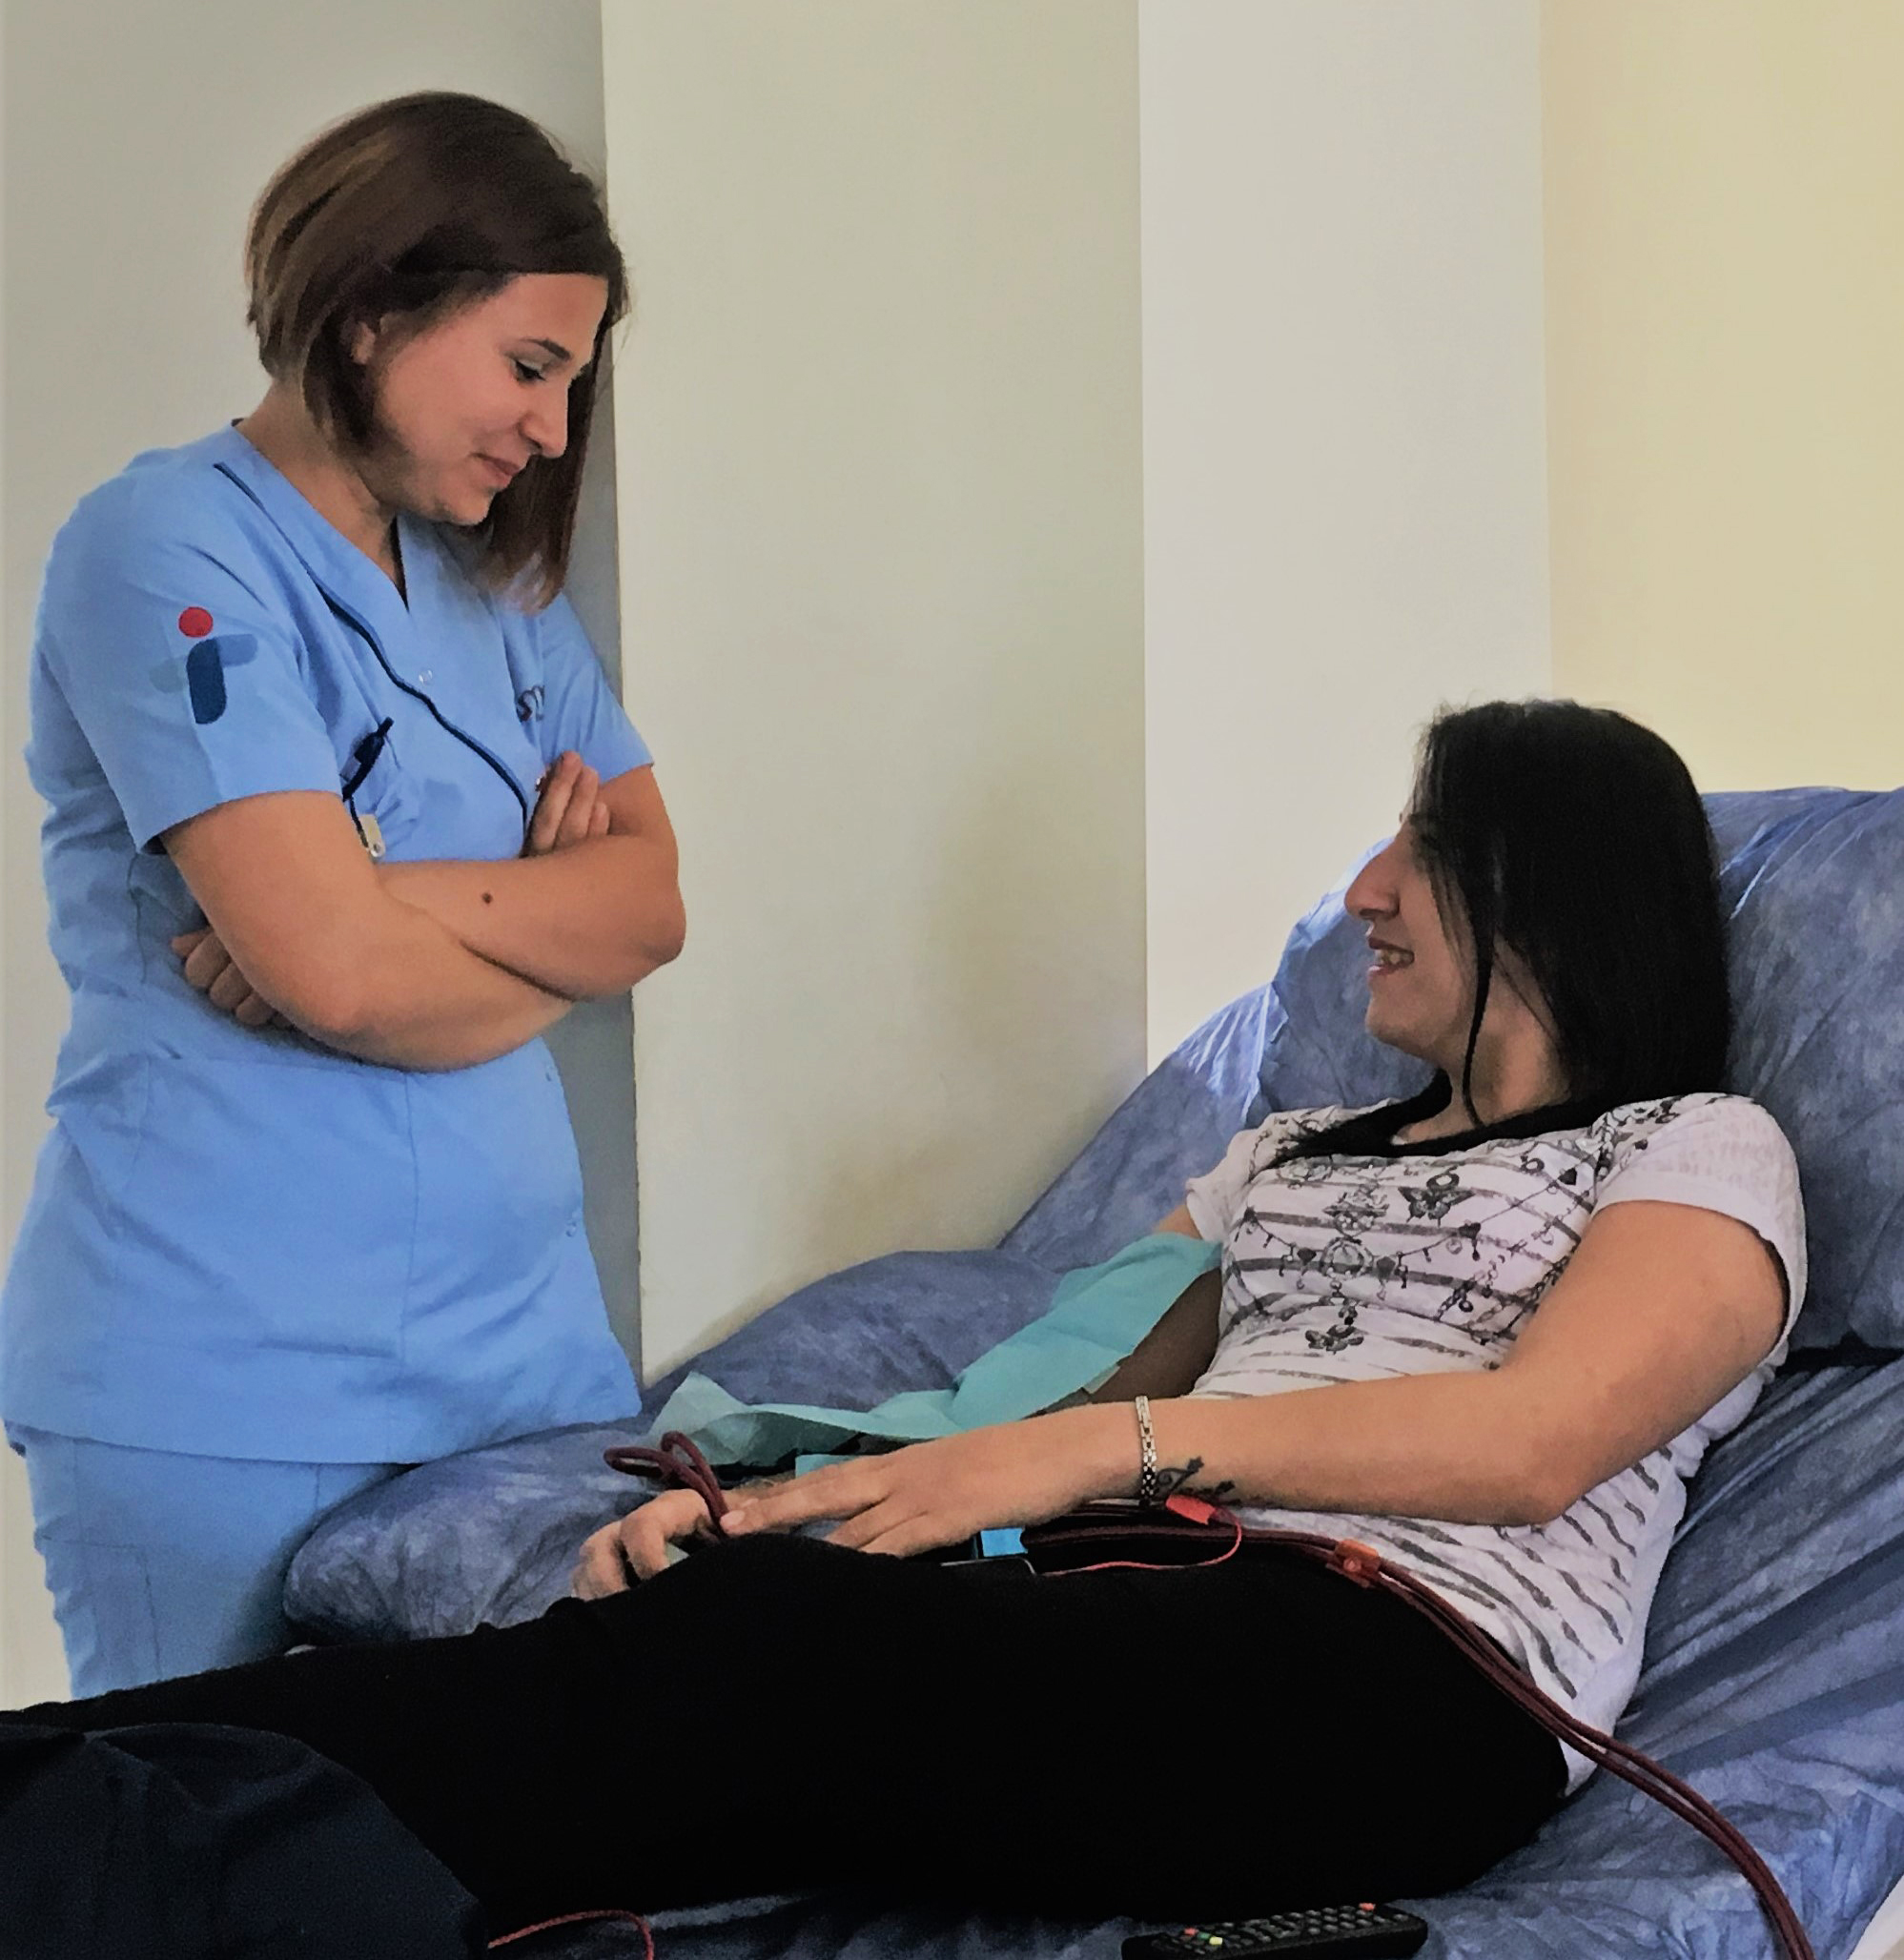 Hilal, a dialysis patient being treated by a nurse working at D.med healthcare.